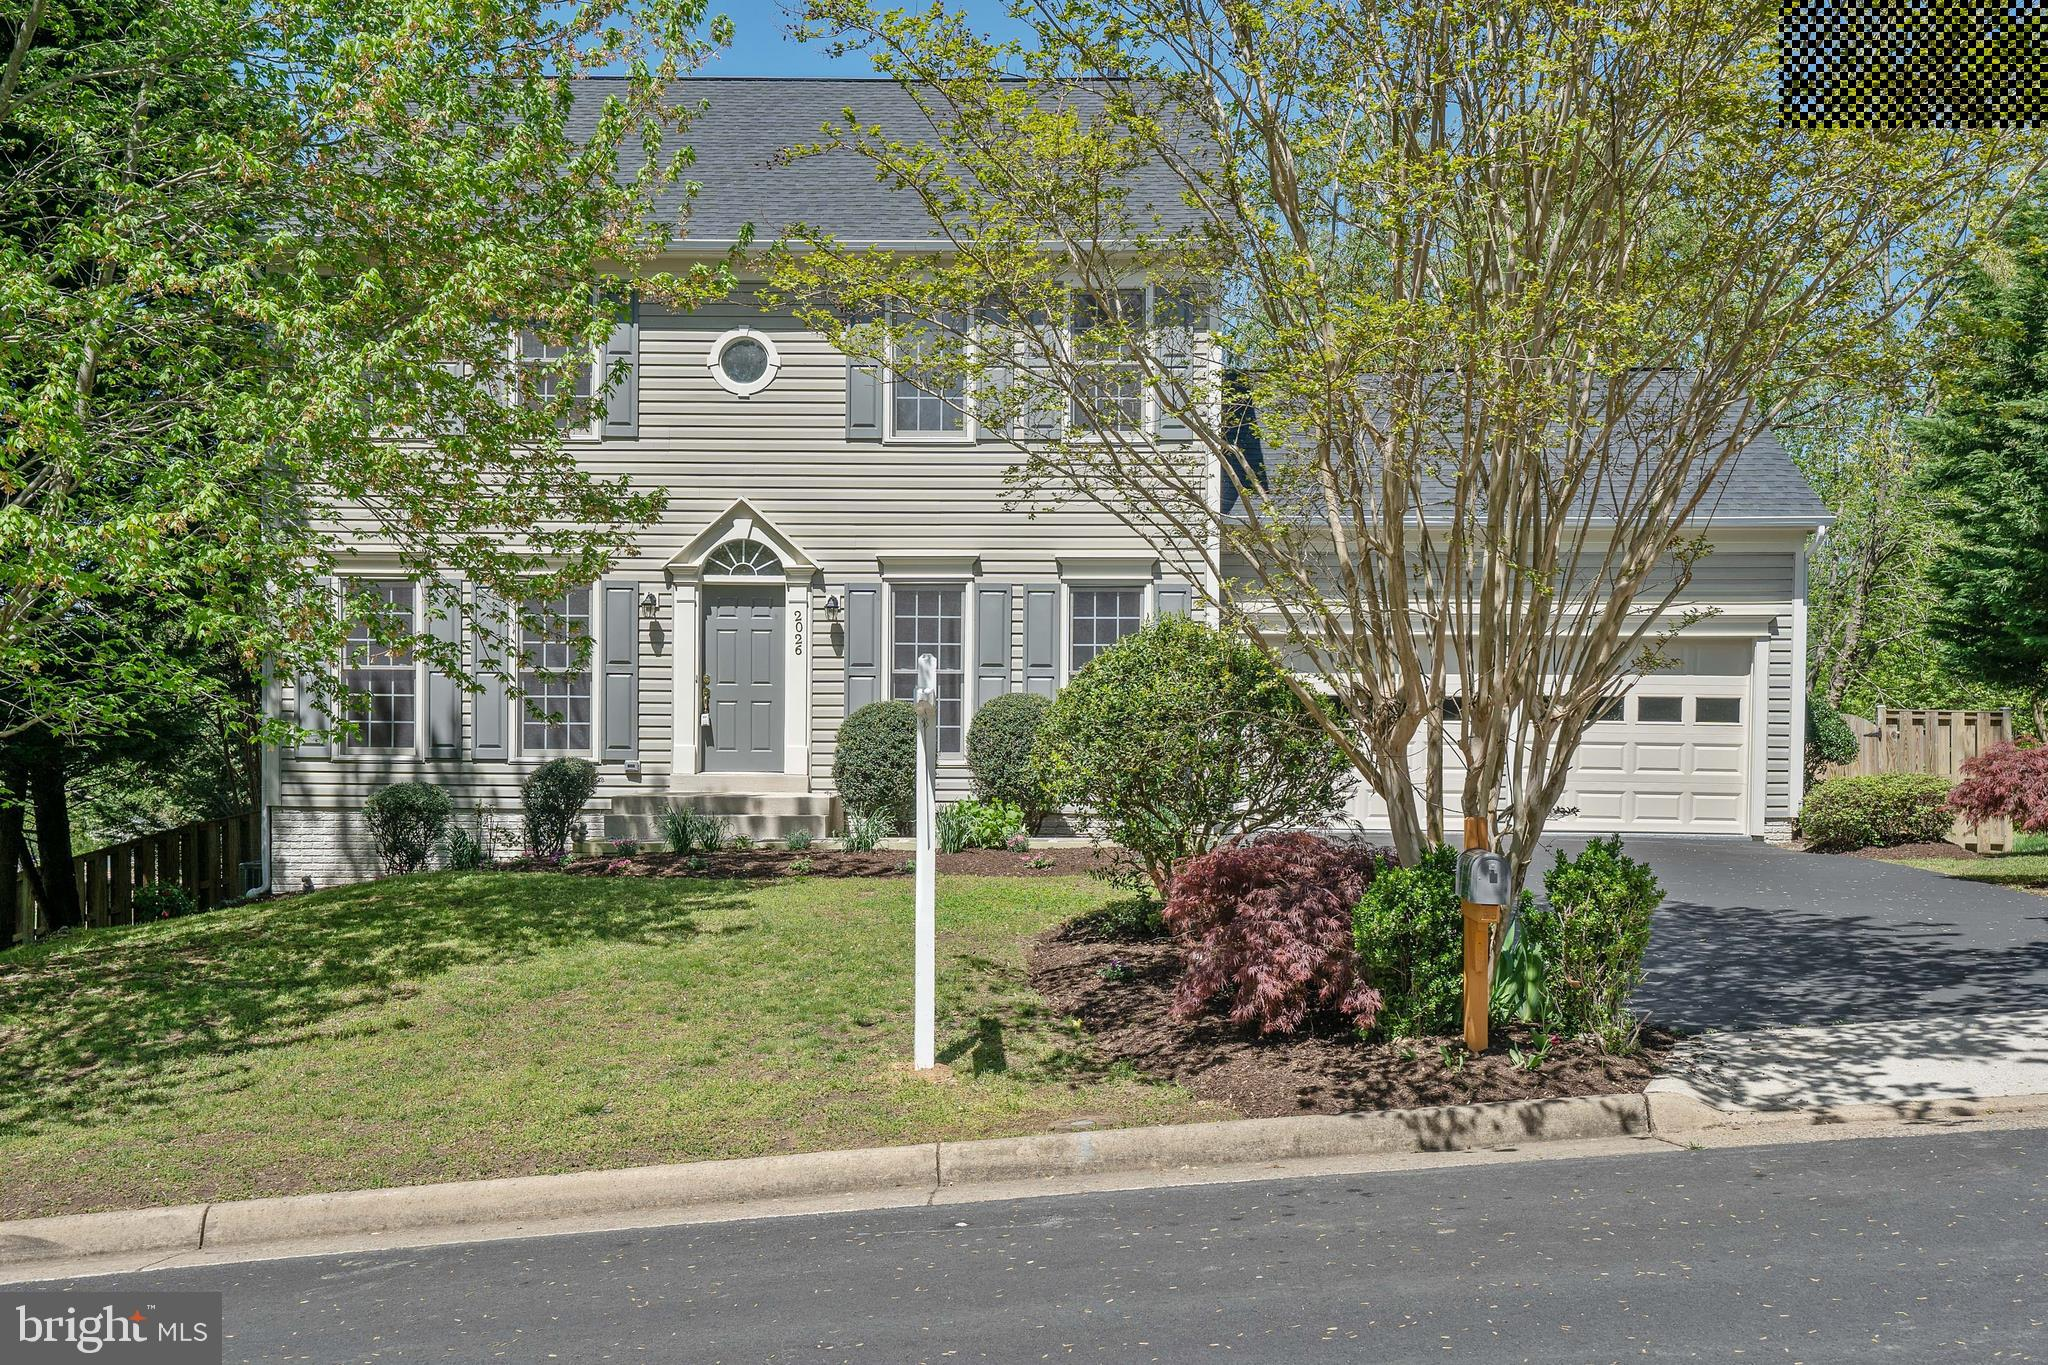 Beautiful 4 Bed 3.5 Bath Home in the Newport subdivision. New Carpet, Fresh Paint, New Garage Door, Upgraded Counter Tops and Bathrooms, Lots of Closet Space, Nice Deck Overlooking Large Back Yard. Must See!